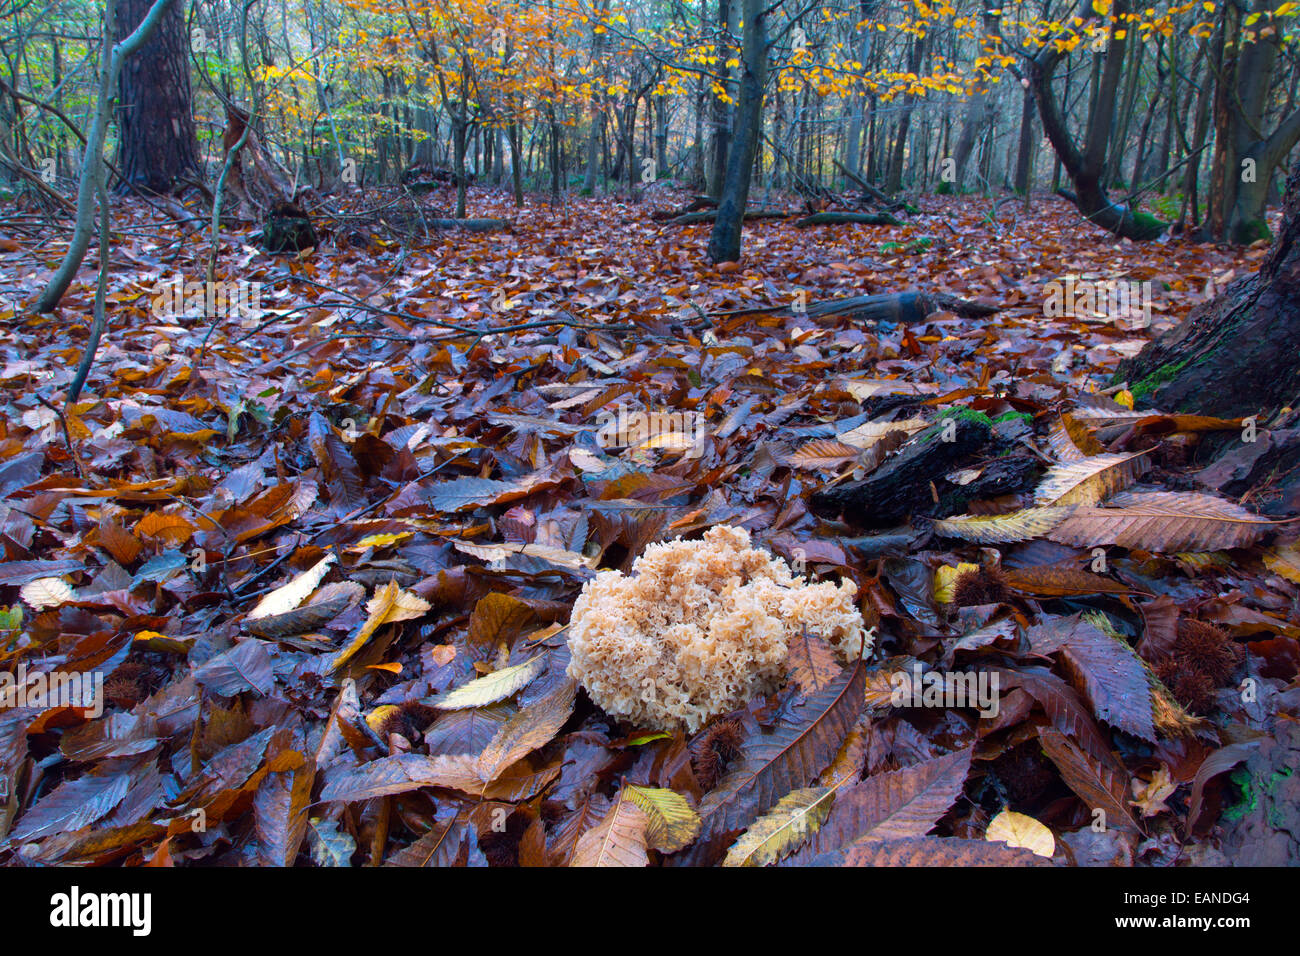 Cauliflower fungus Sparassis crispa growing parasitically on the roots of conifer Stock Photo